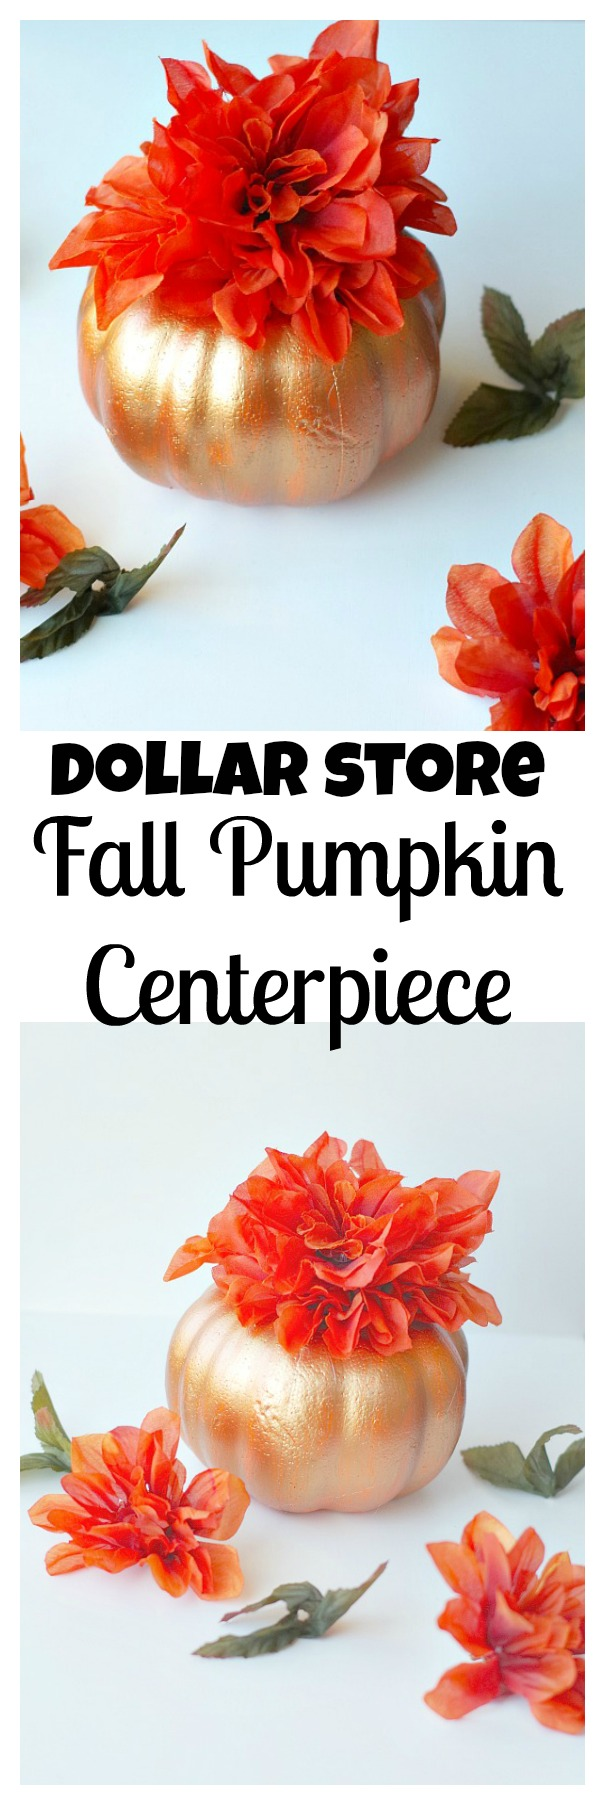 dollar-store-fall-pumpkin-centerpiece